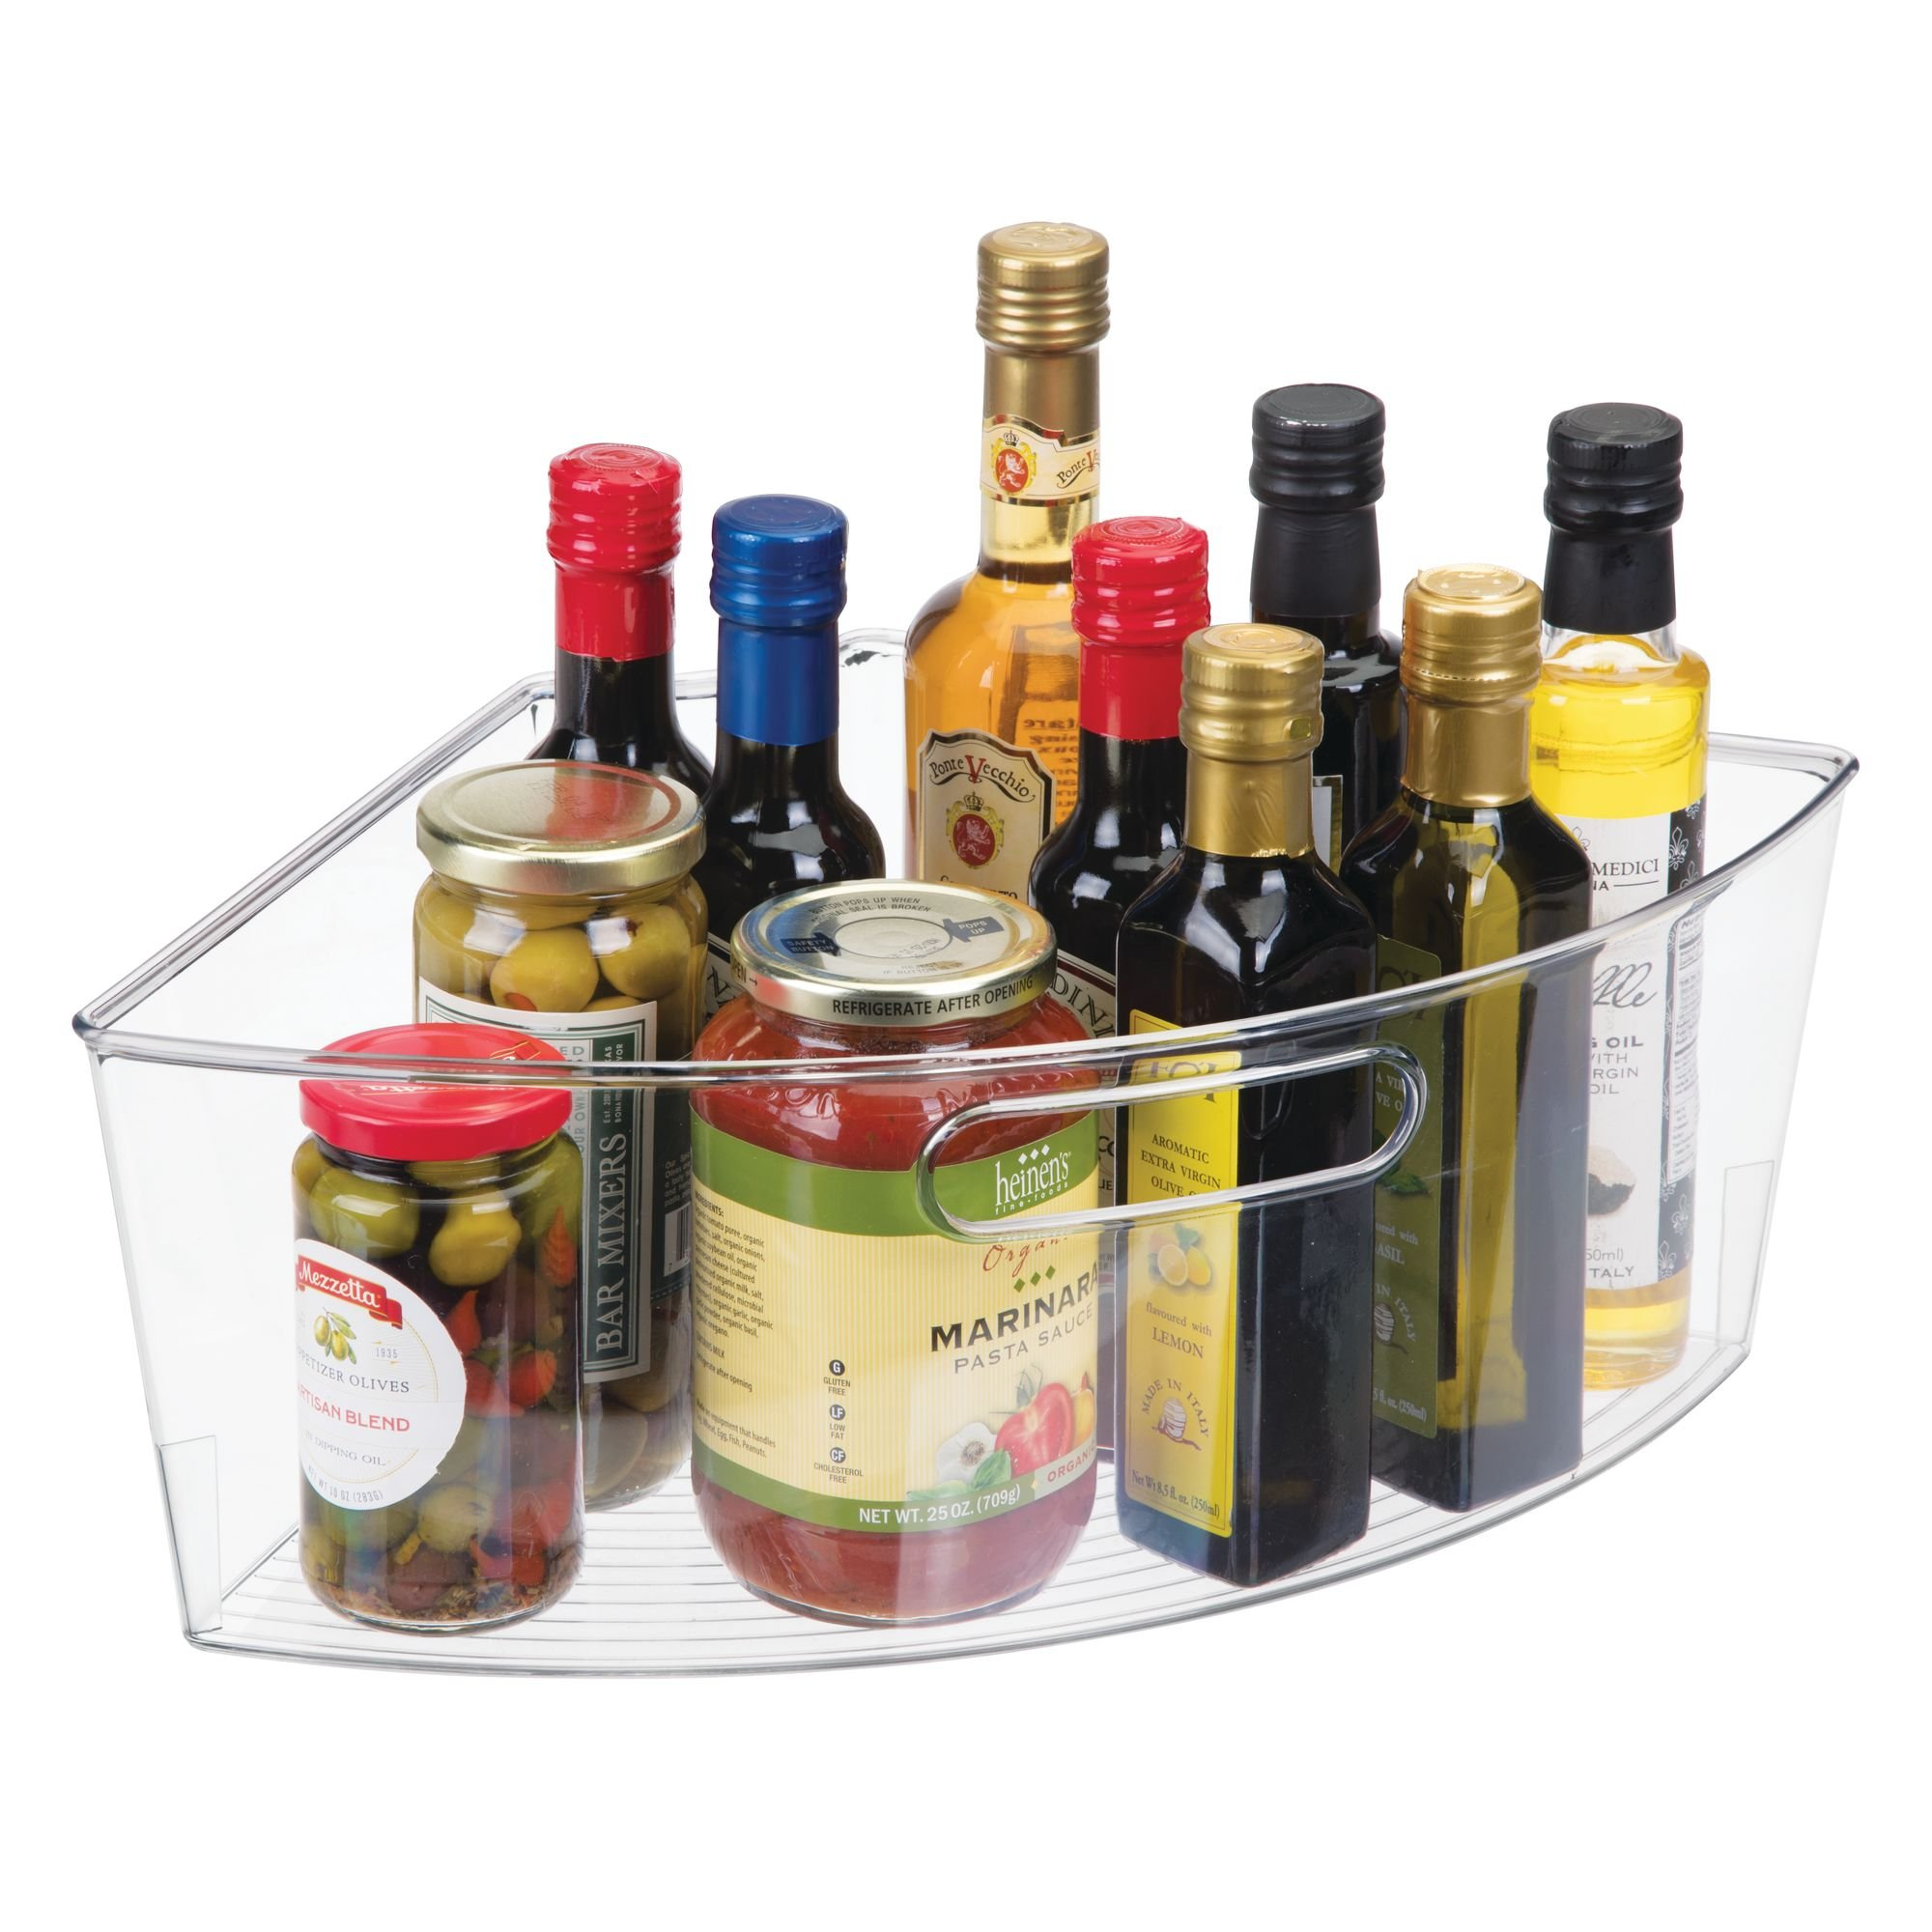 mDesign Kitchen Cabinet Plastic Lazy Susan Storage Organizer Bins with Front Handle - Large Pie-Shaped 1/4 Wedge, 6'' Deep Container - Food Safe, BPA Free - Set of 4, Clear by mDesign (Image #6)